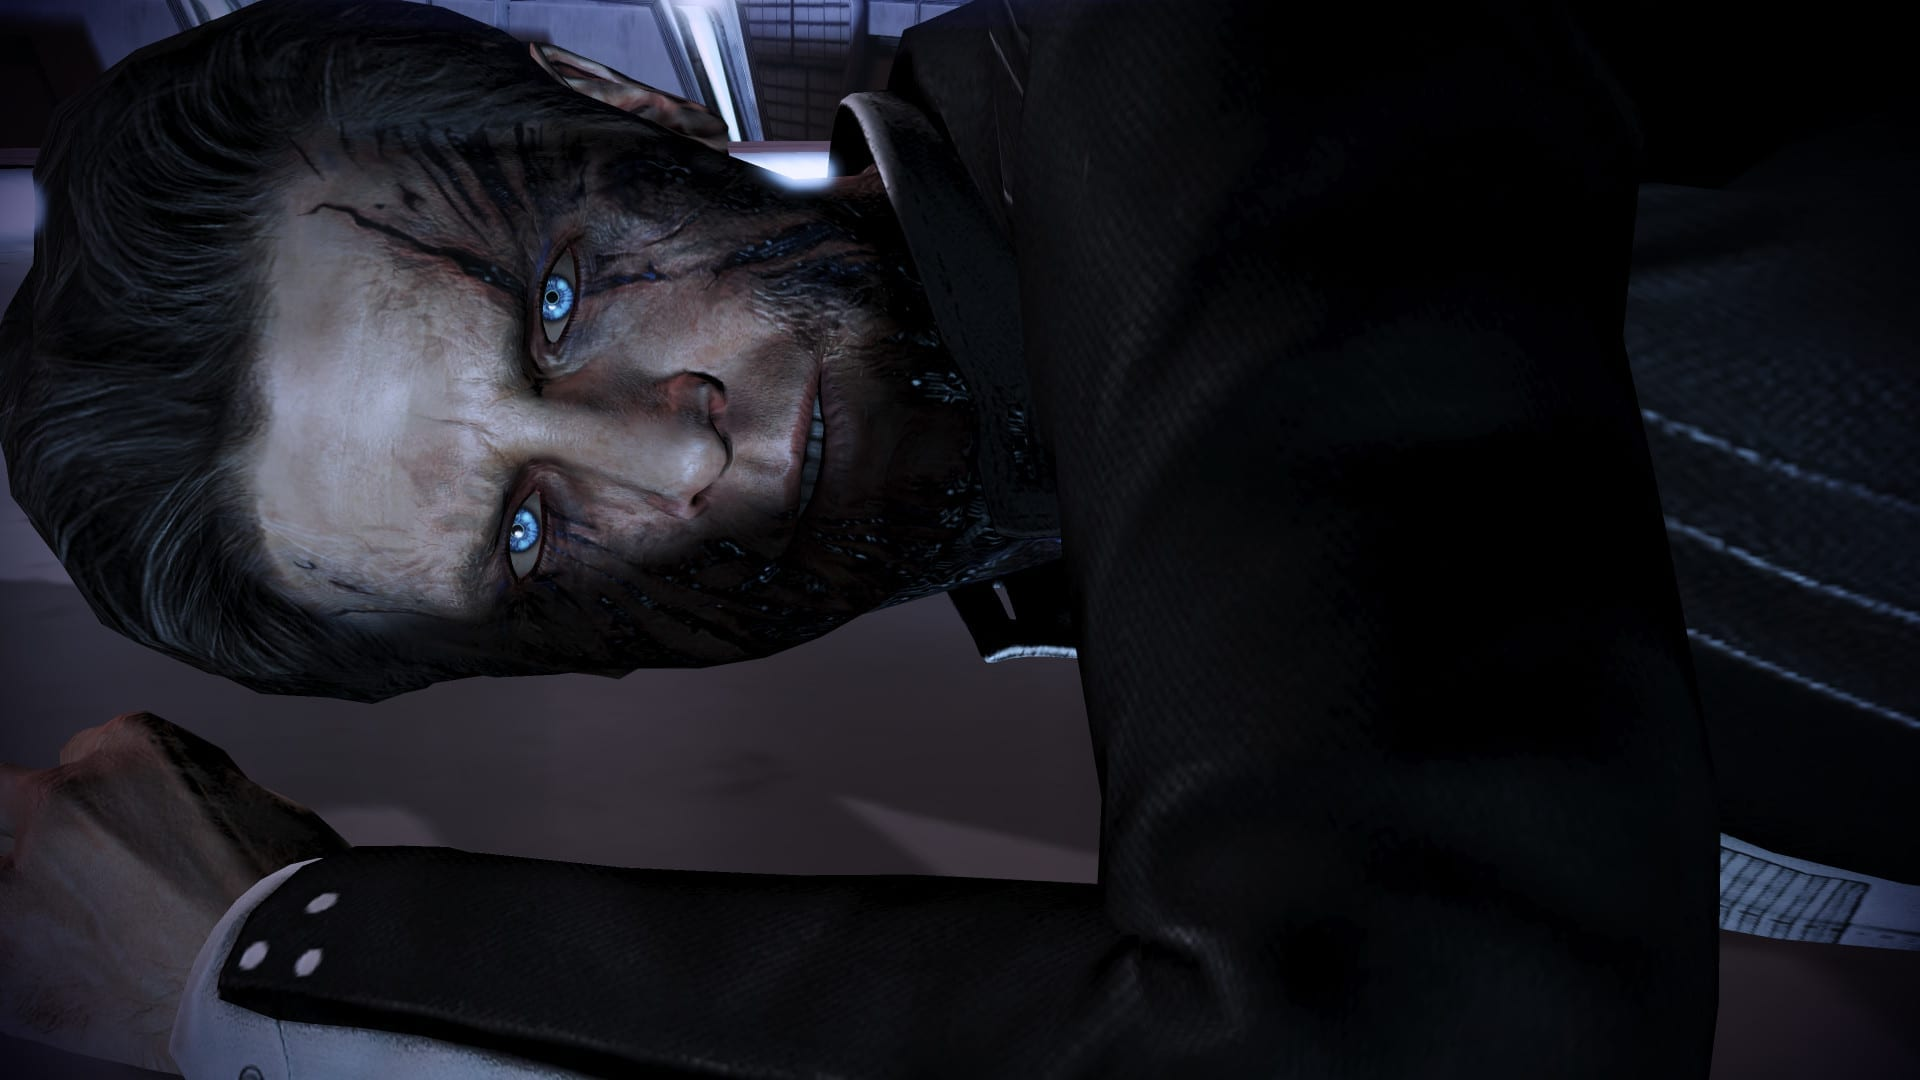 These Shots Show Why Mass Effect is Still the Best Space RPG